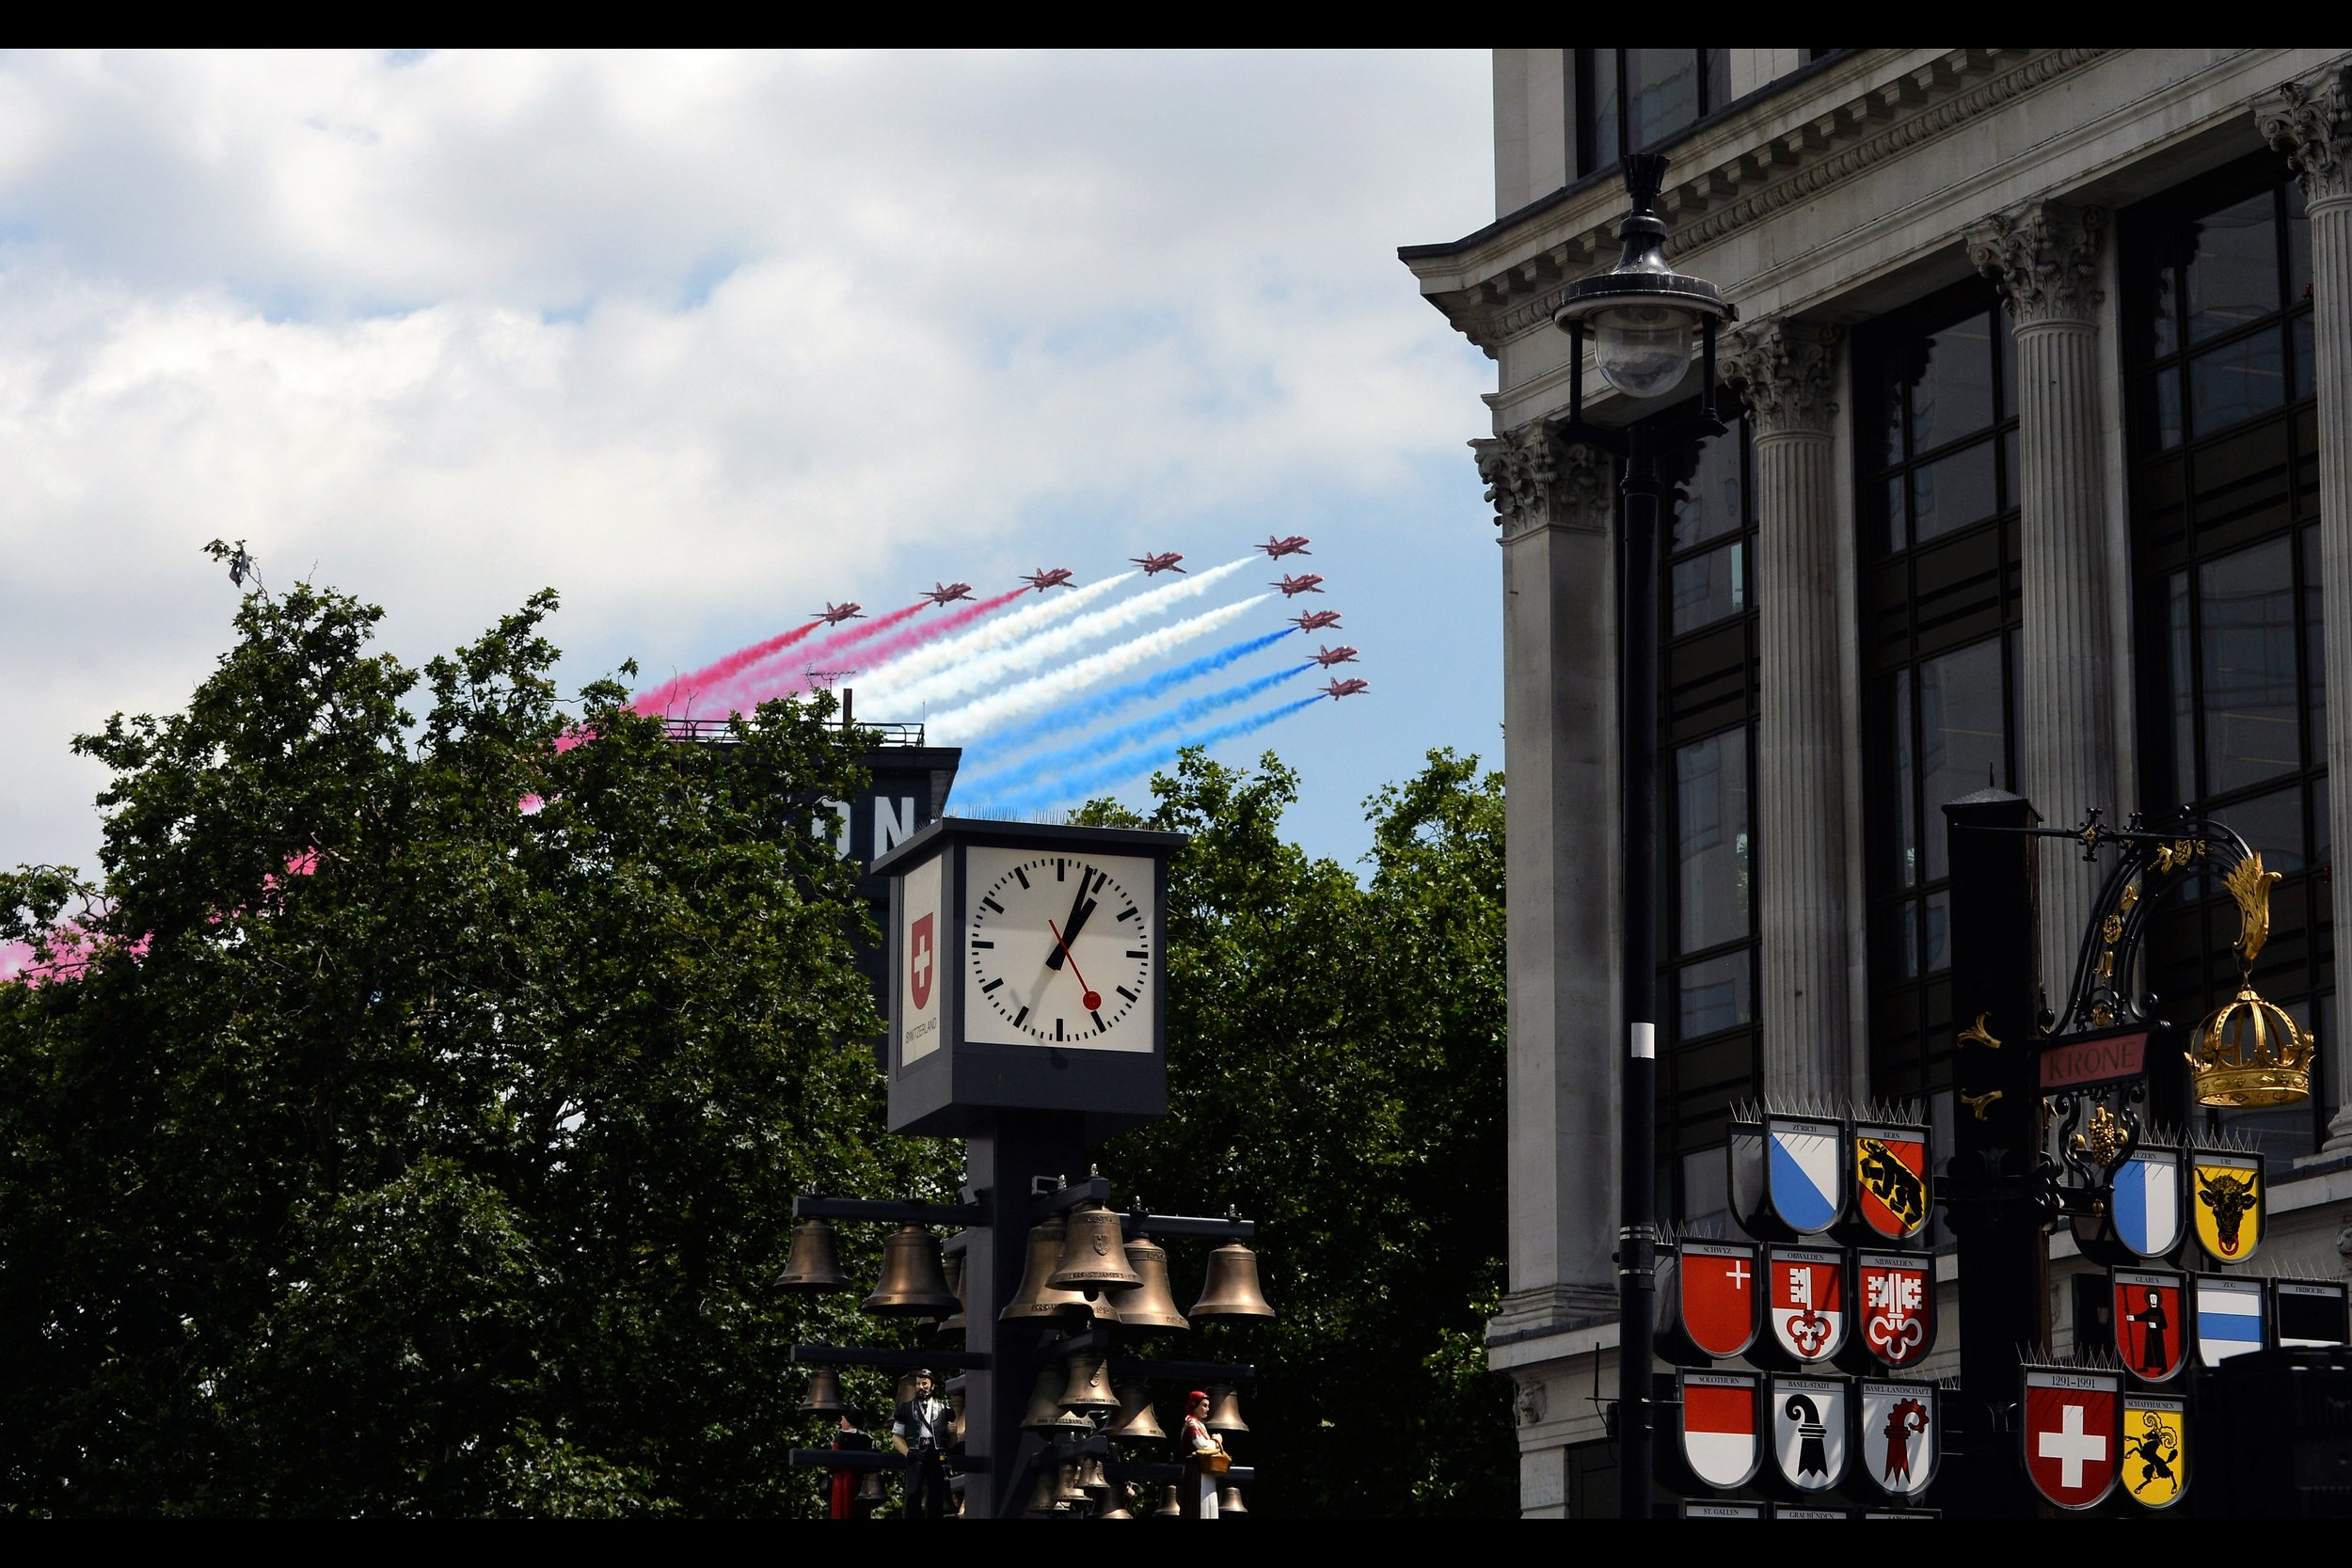 I'd walked from Green Park to Leicester Square quickly enough to catch the Red Arrows flyby. And get a replacement wristband for tomorrow. Priorities, people!